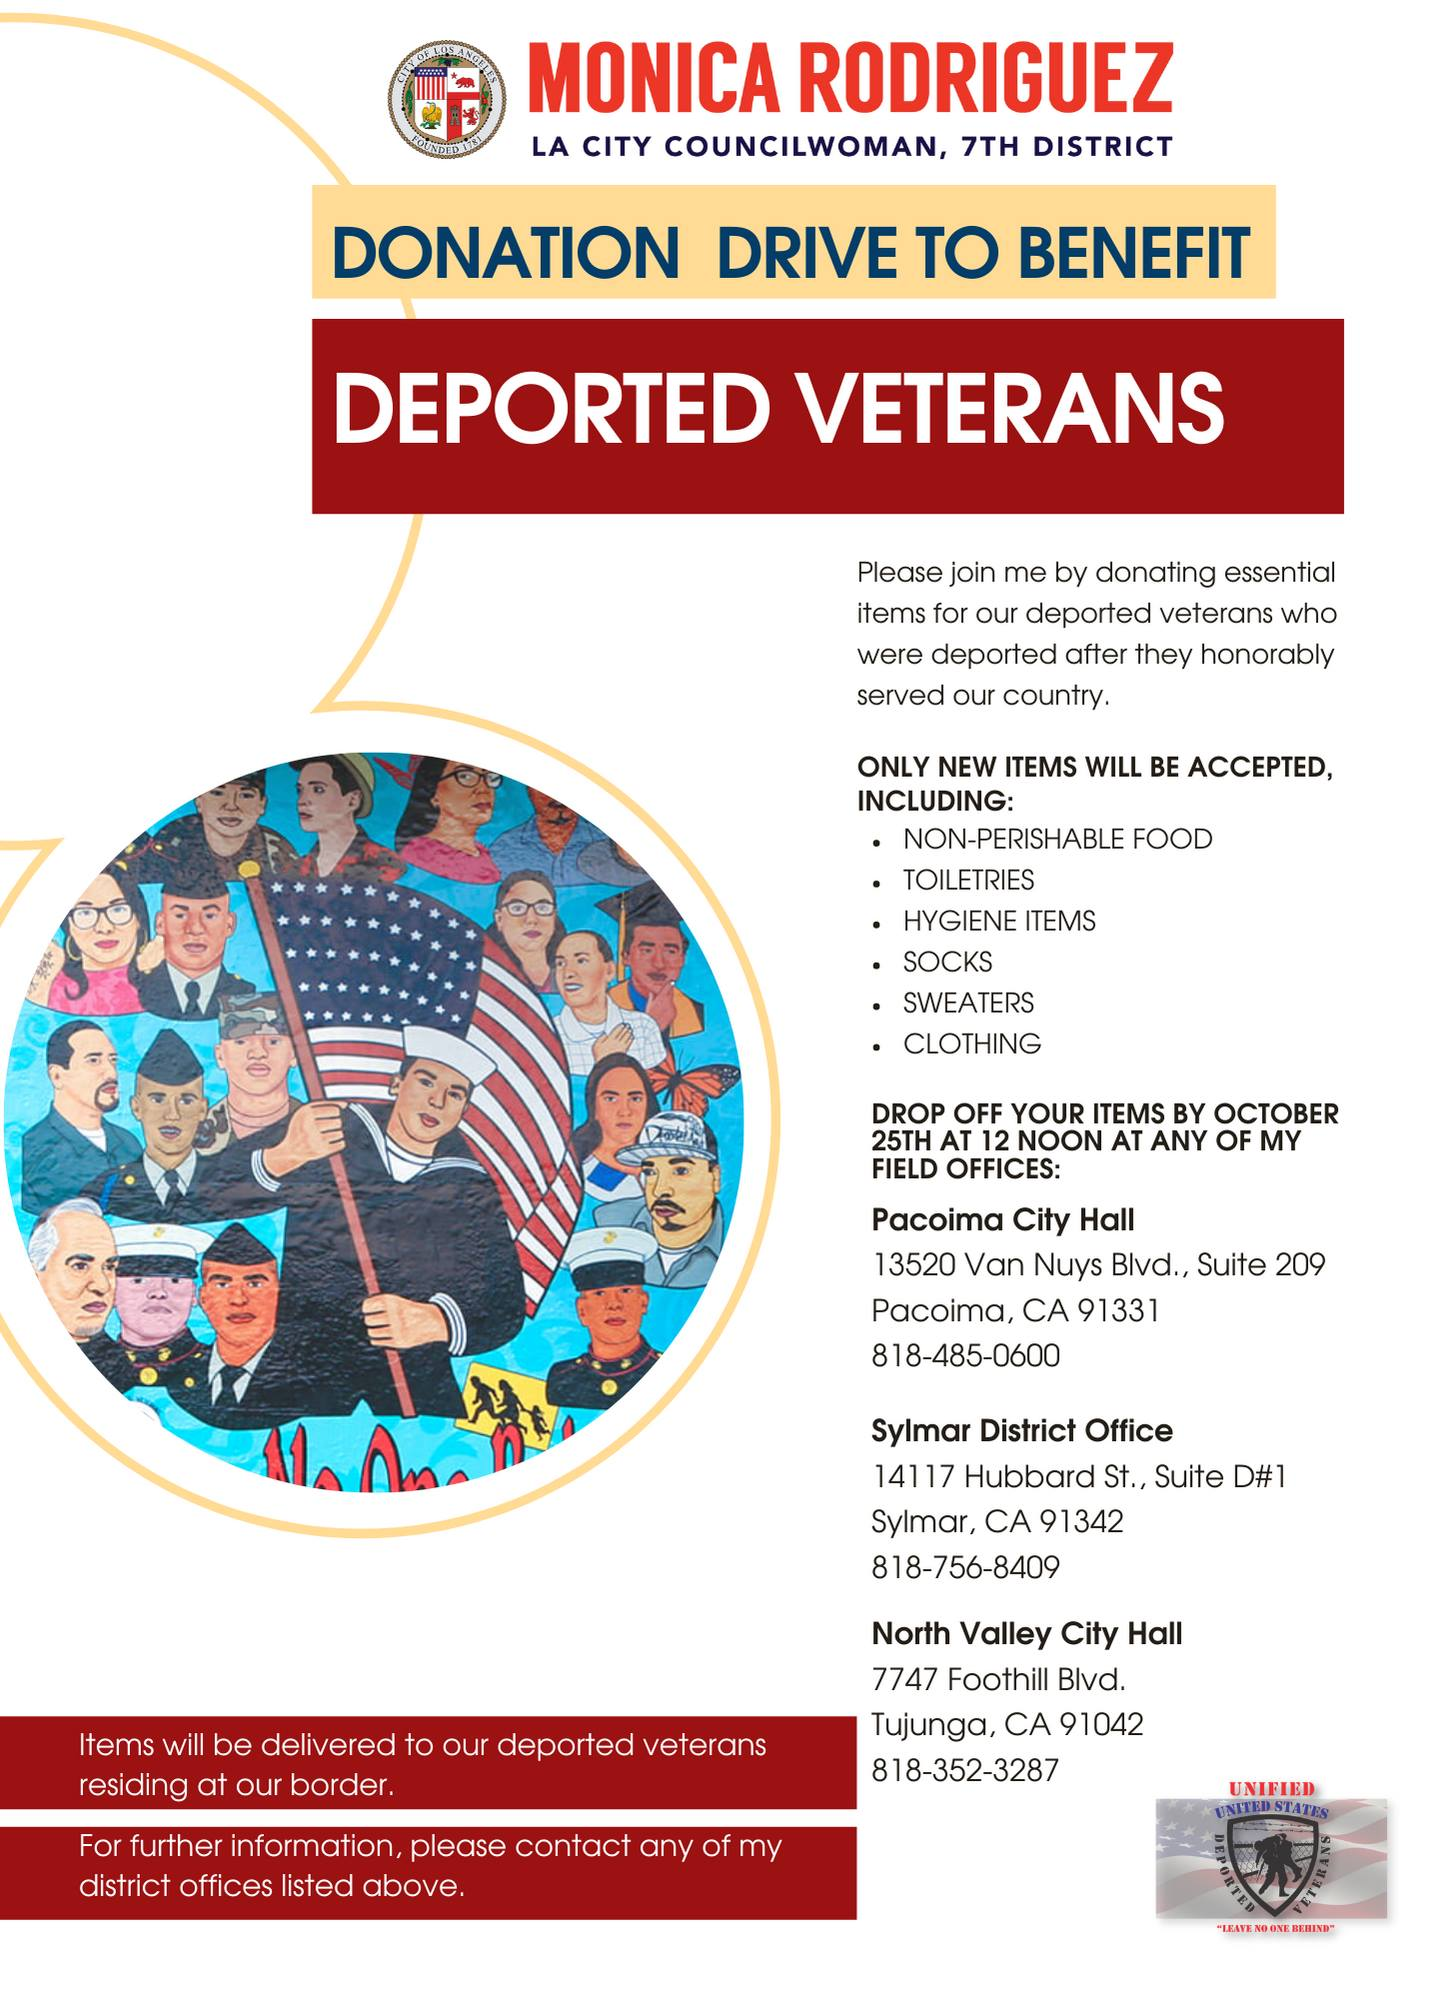 Donation Drive to Benefit Deported Veterans